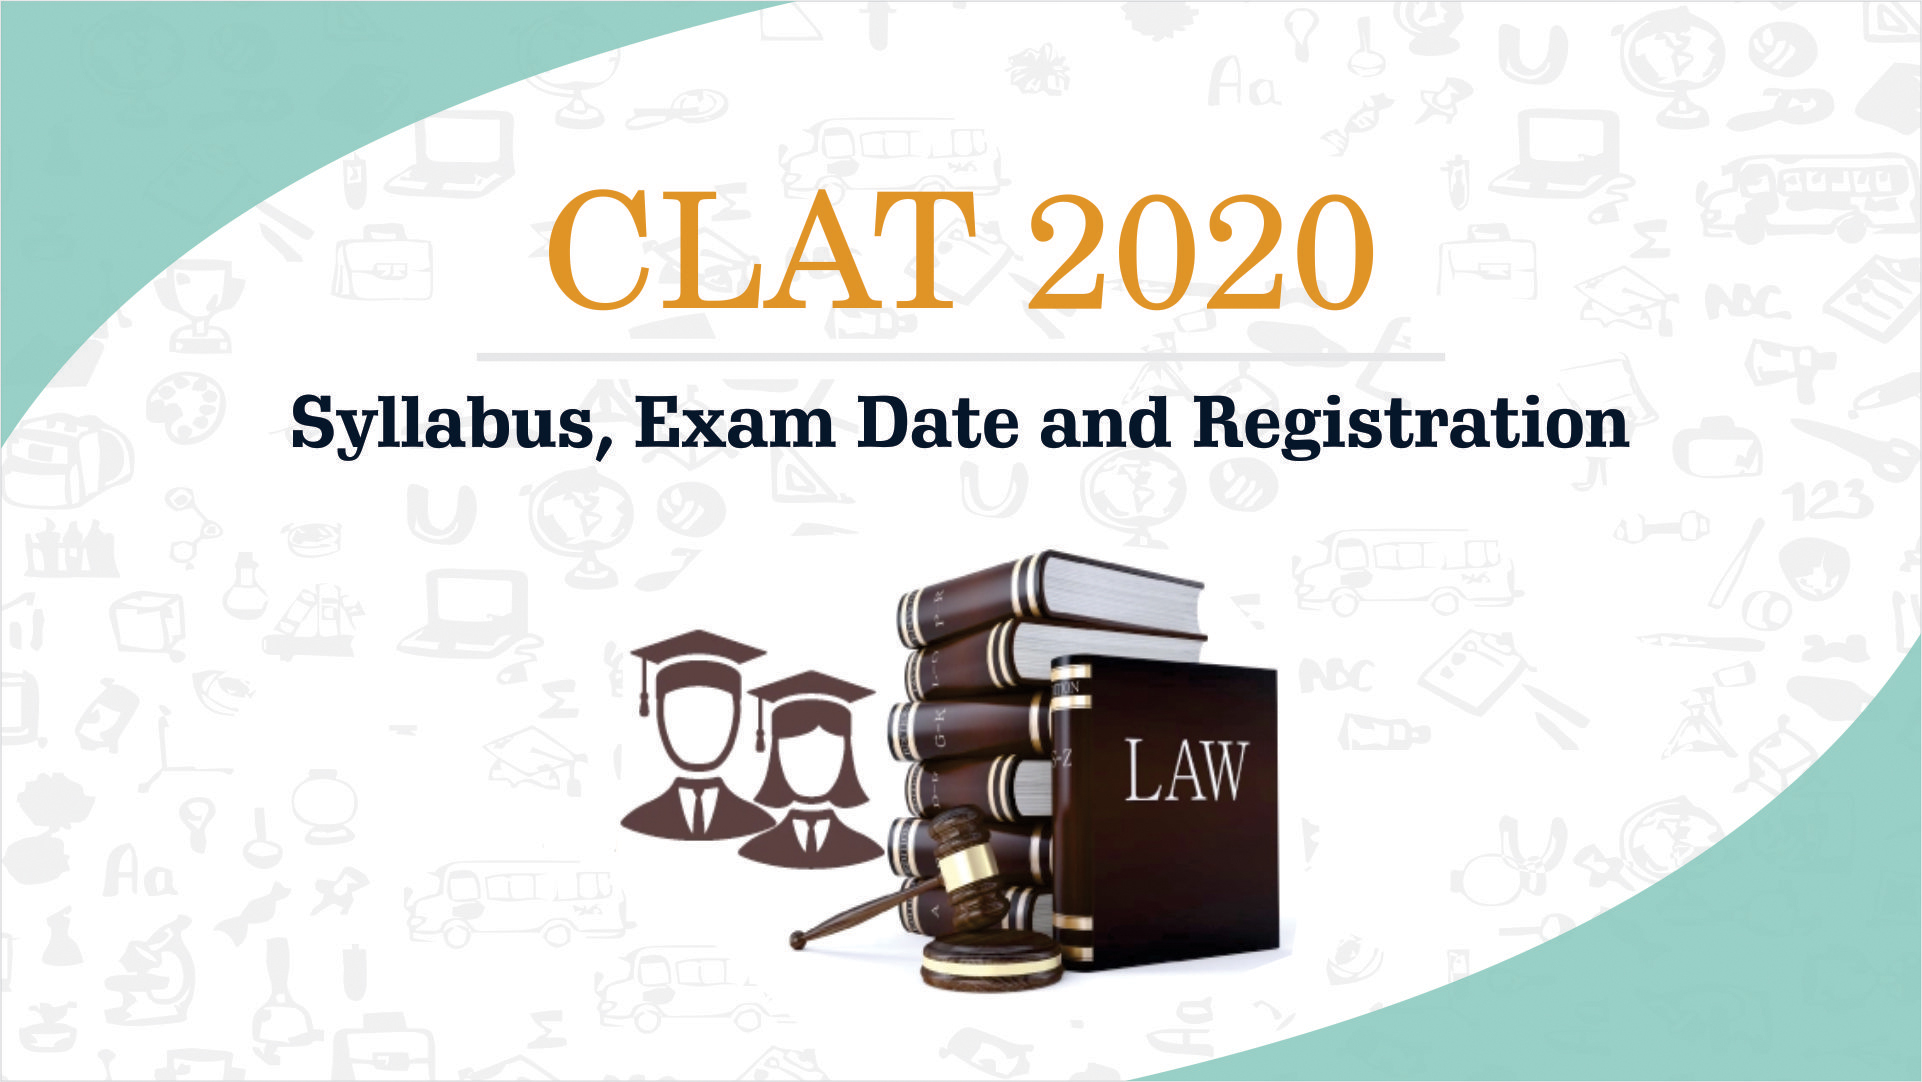 clat-2020-syllabus-registration